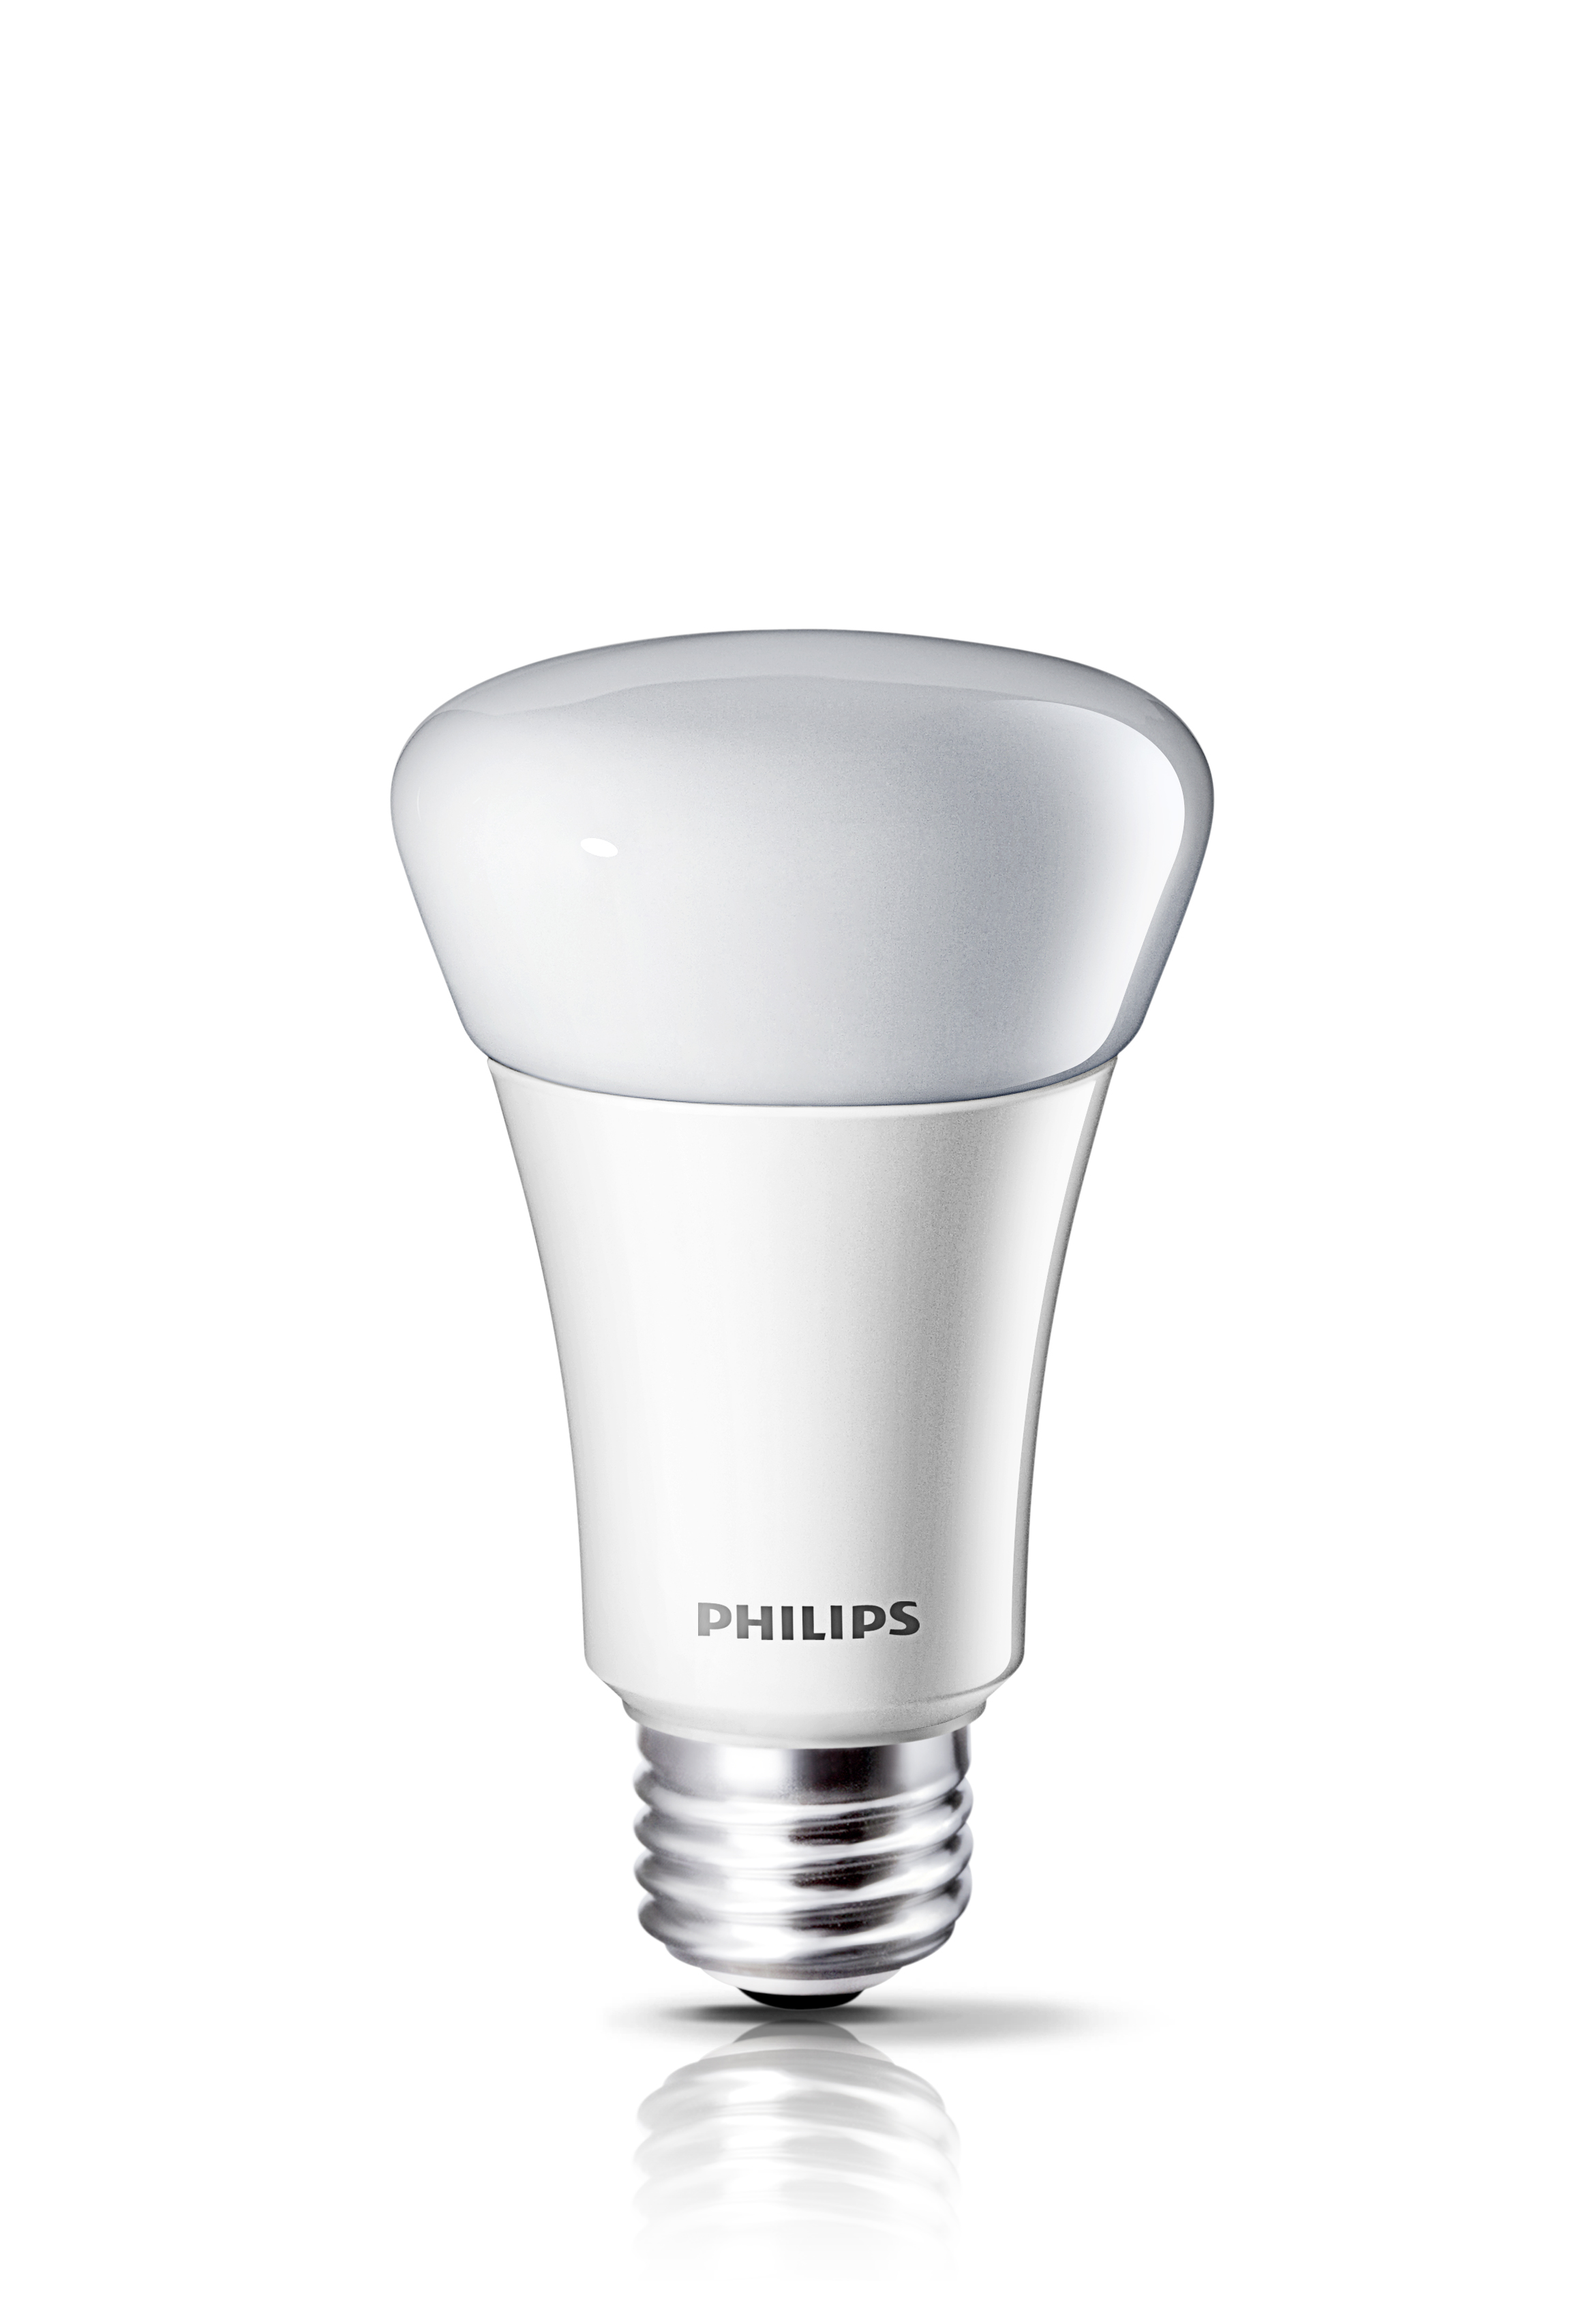 philips 60 watt led bulb gets a makeover. Black Bedroom Furniture Sets. Home Design Ideas